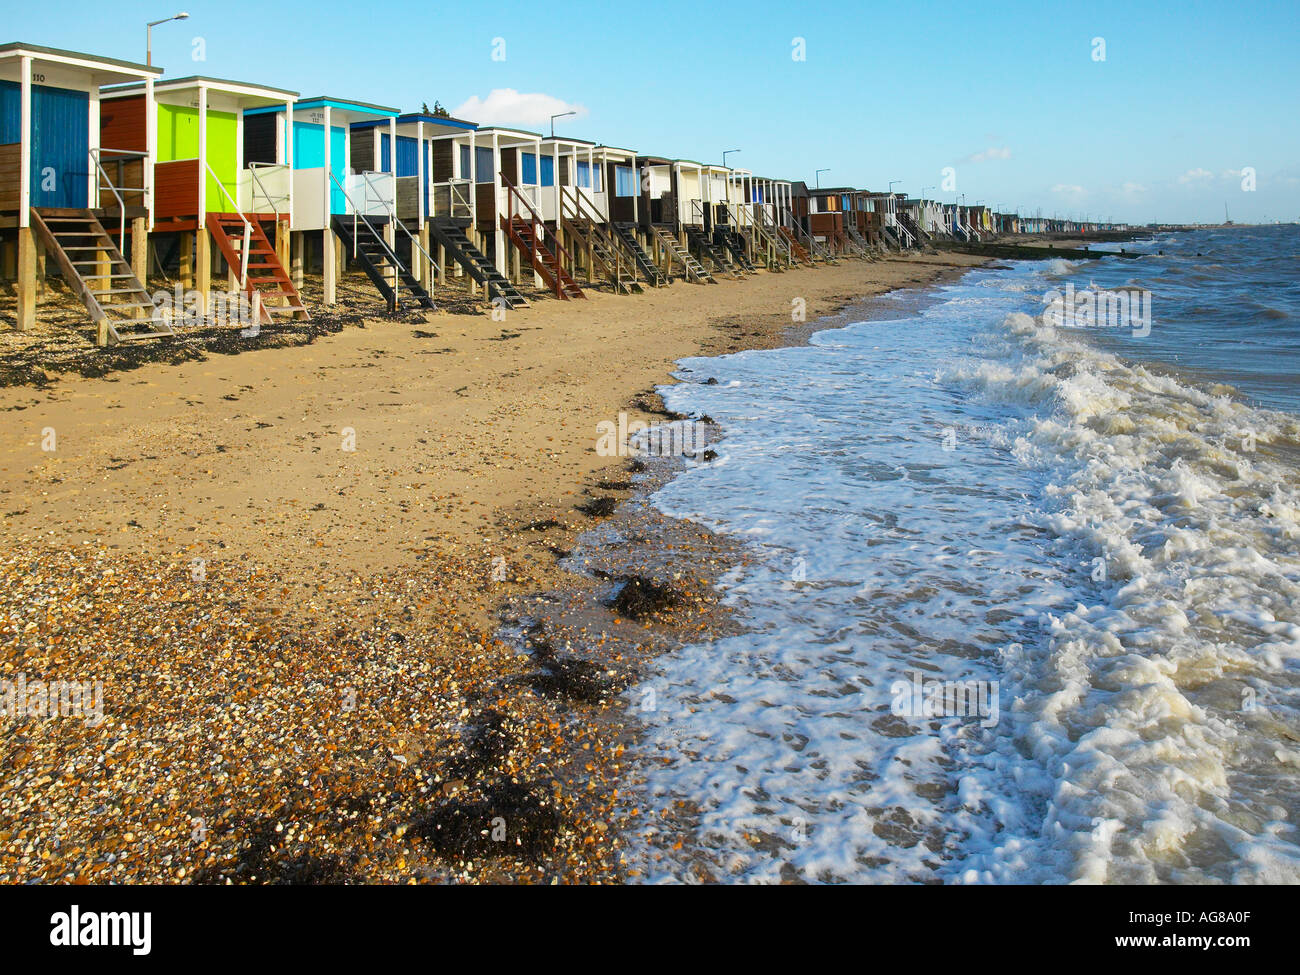 colourful beach huts along the seashore with waves gentley foaming and blue skies on a warm day at southend on sea Stock Photo